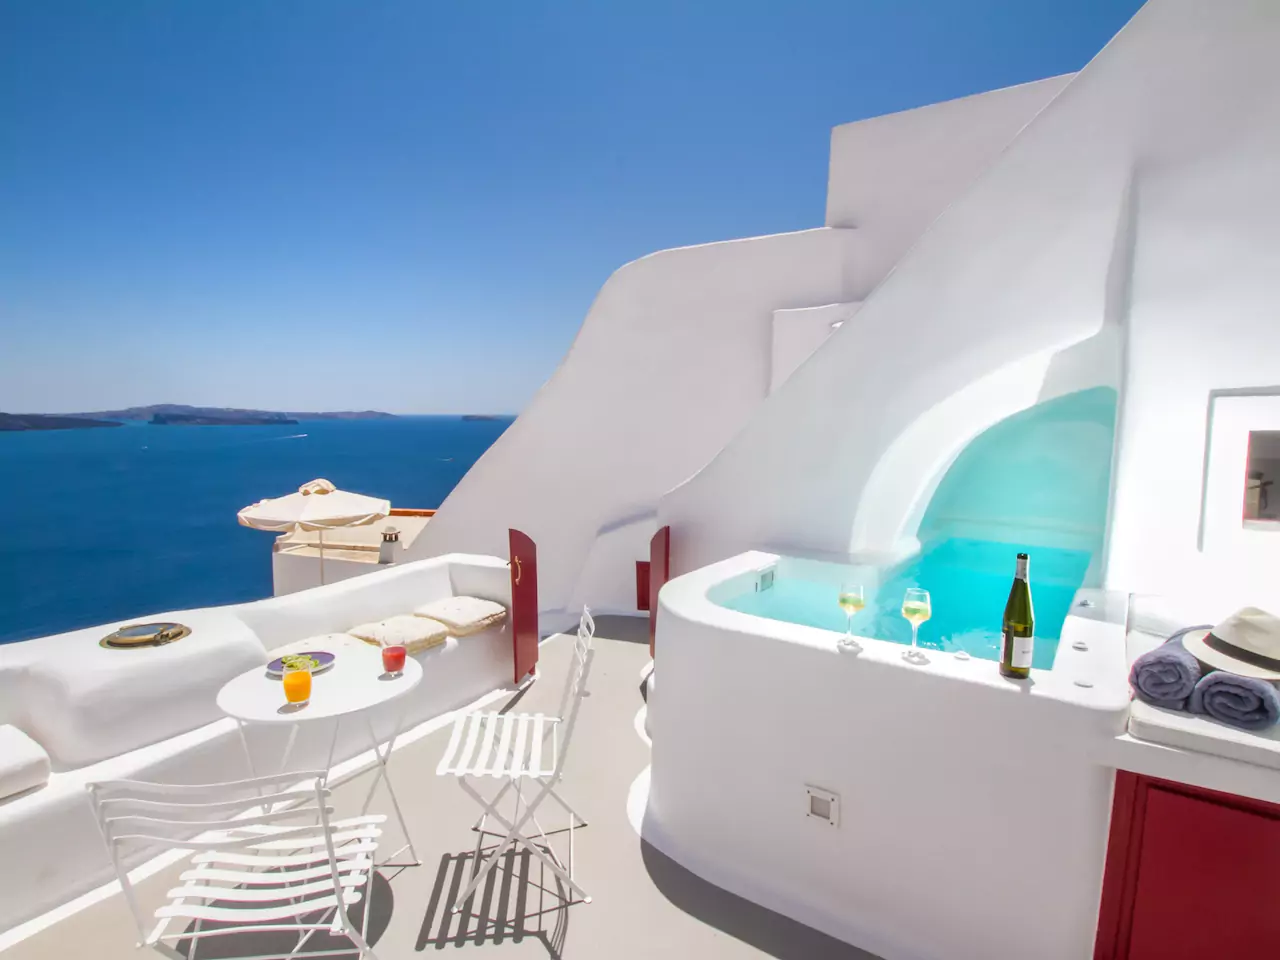 10 Stunning Airbnbs in Santorini That Are Worth the Splurge